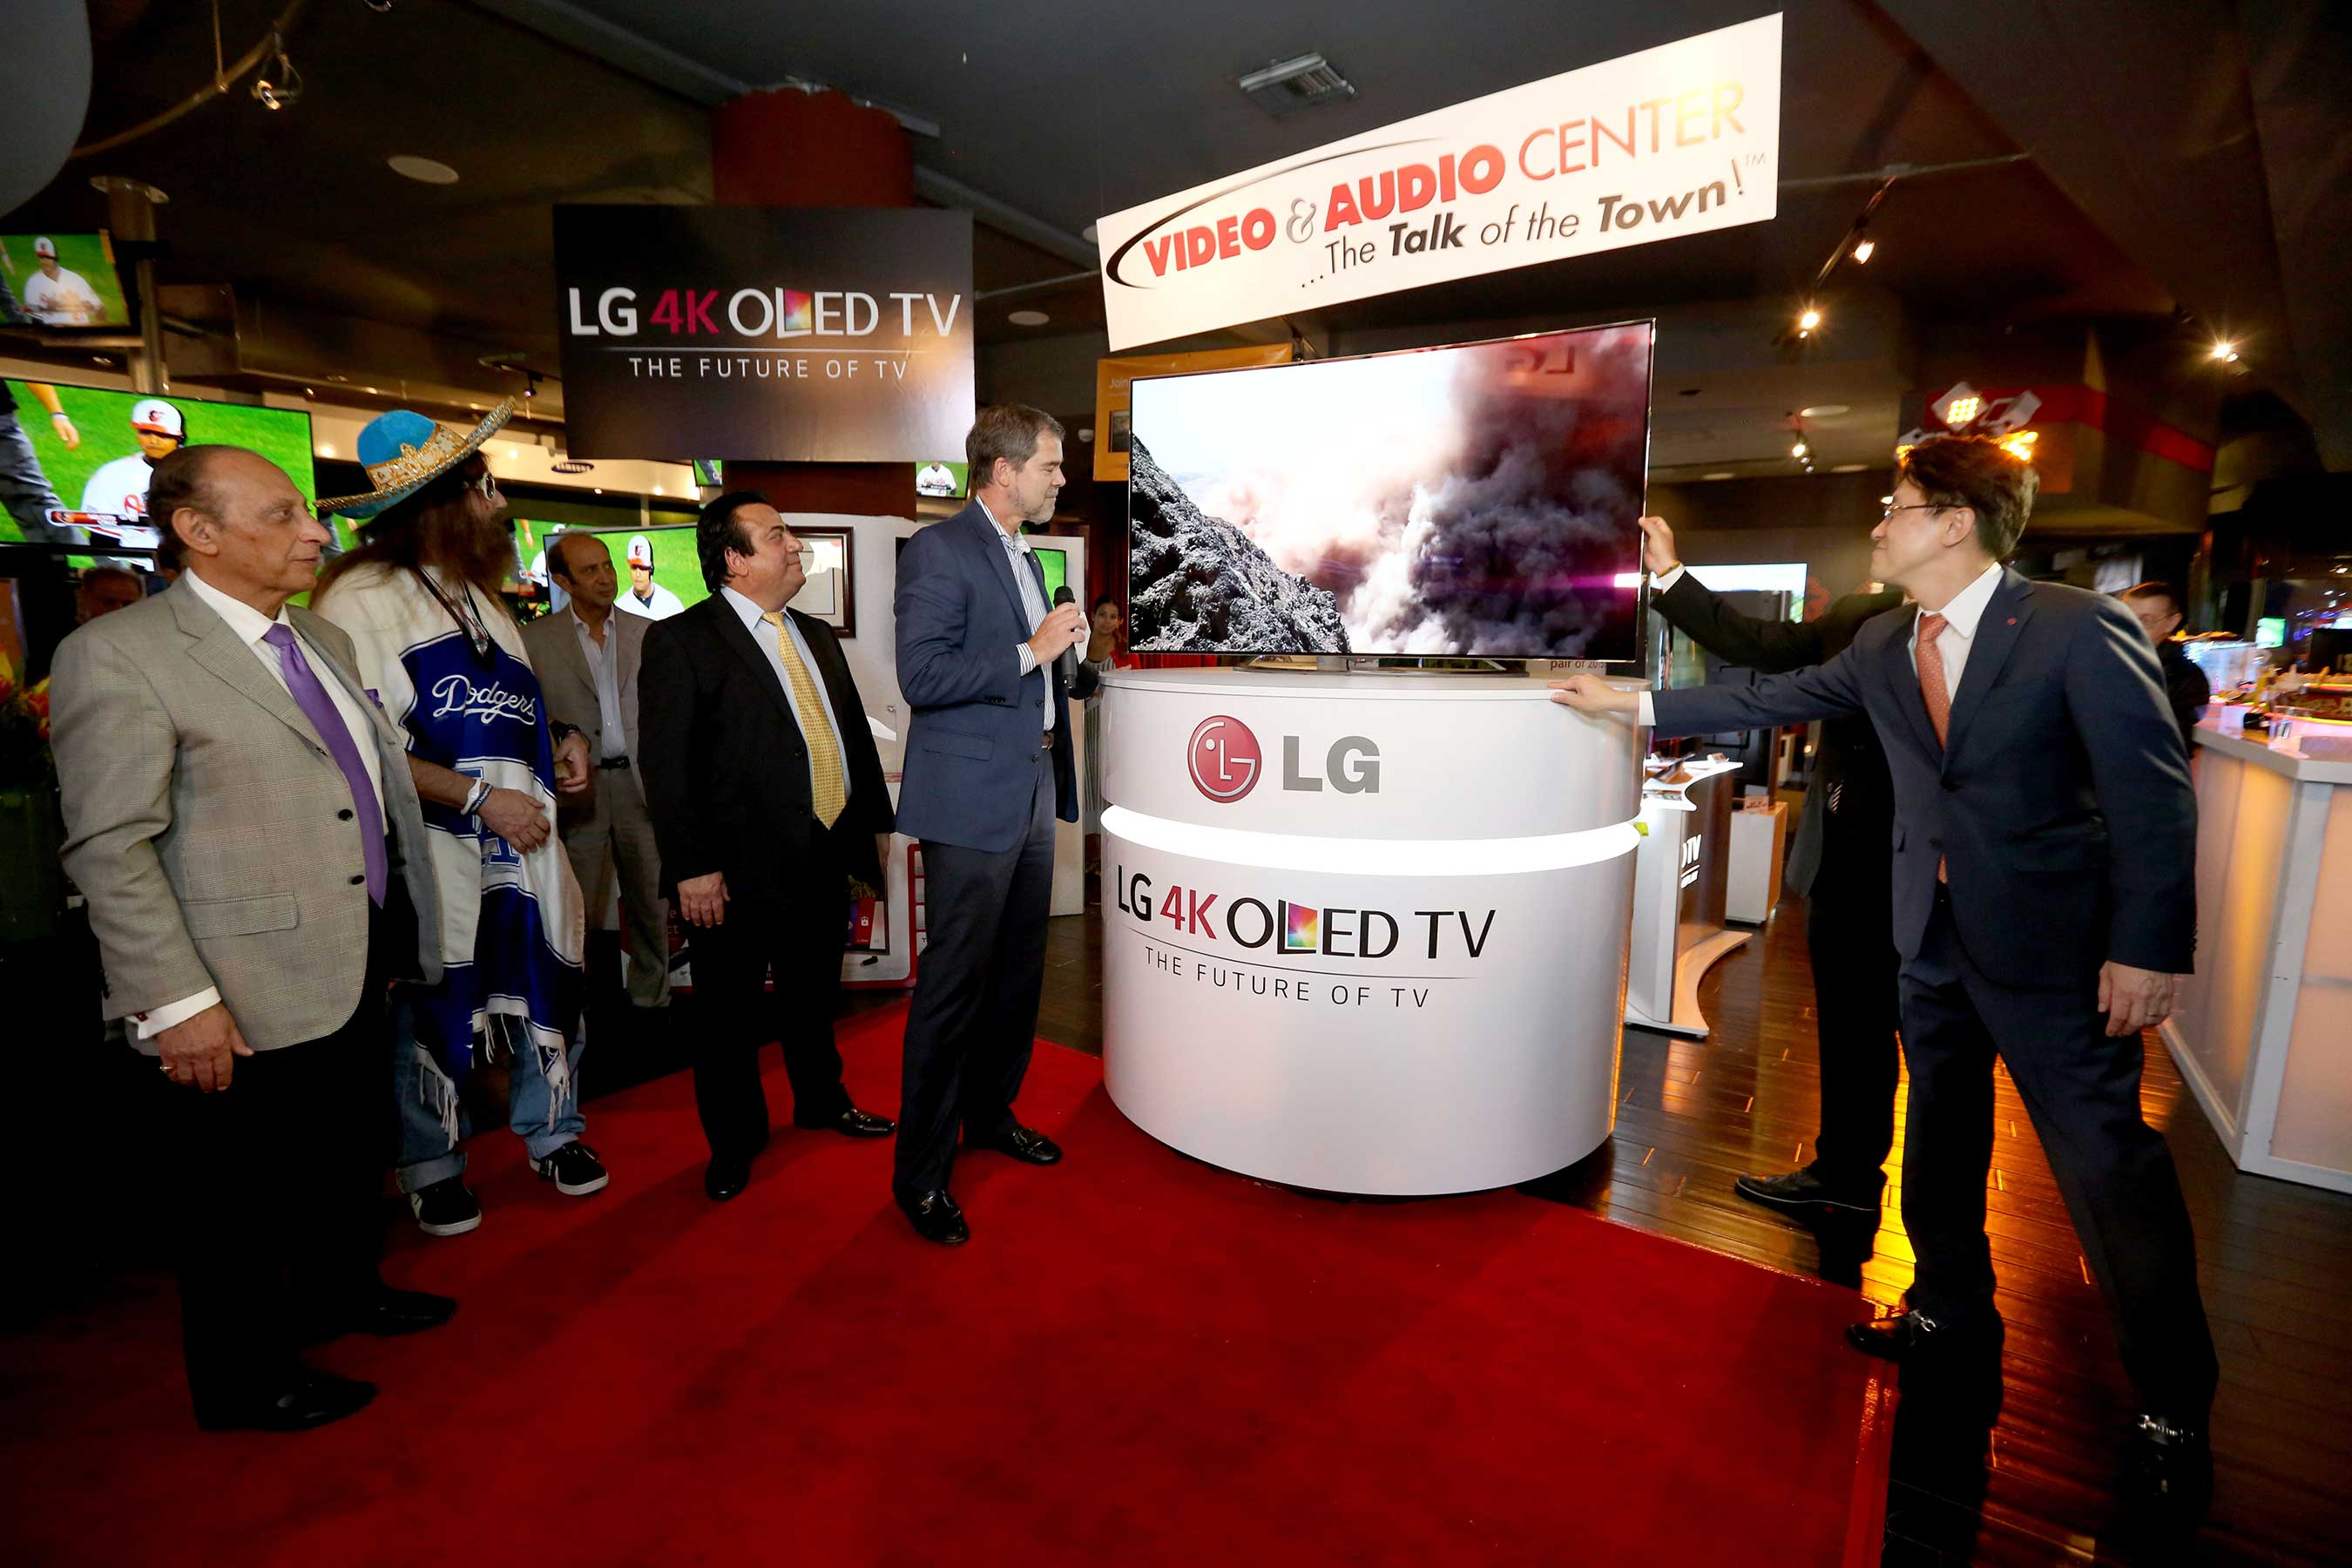 http://www.multivu.com/players/English/7335051-lg-electronics-usa-first-ultra-hd-4k-oled-tv-now-available-u-s-consumers/gallery/image/8c24dcc5-f9c2-4c04-9a89-e97b6d16400a.HR.jpg